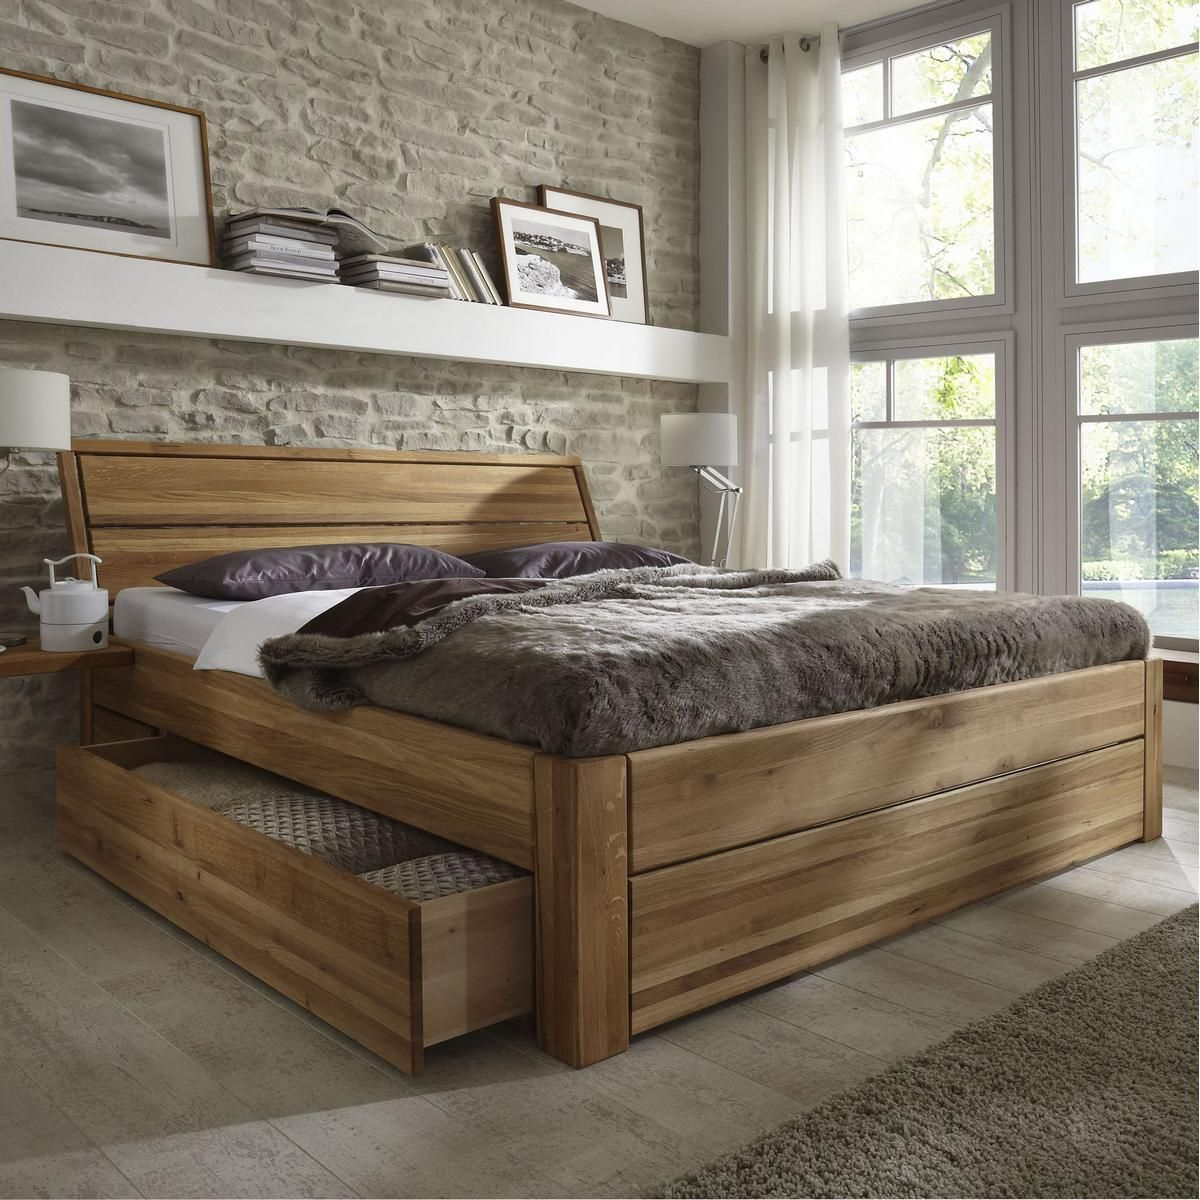 massivholz schubladenbett 180x200 holzbett bett eiche. Black Bedroom Furniture Sets. Home Design Ideas